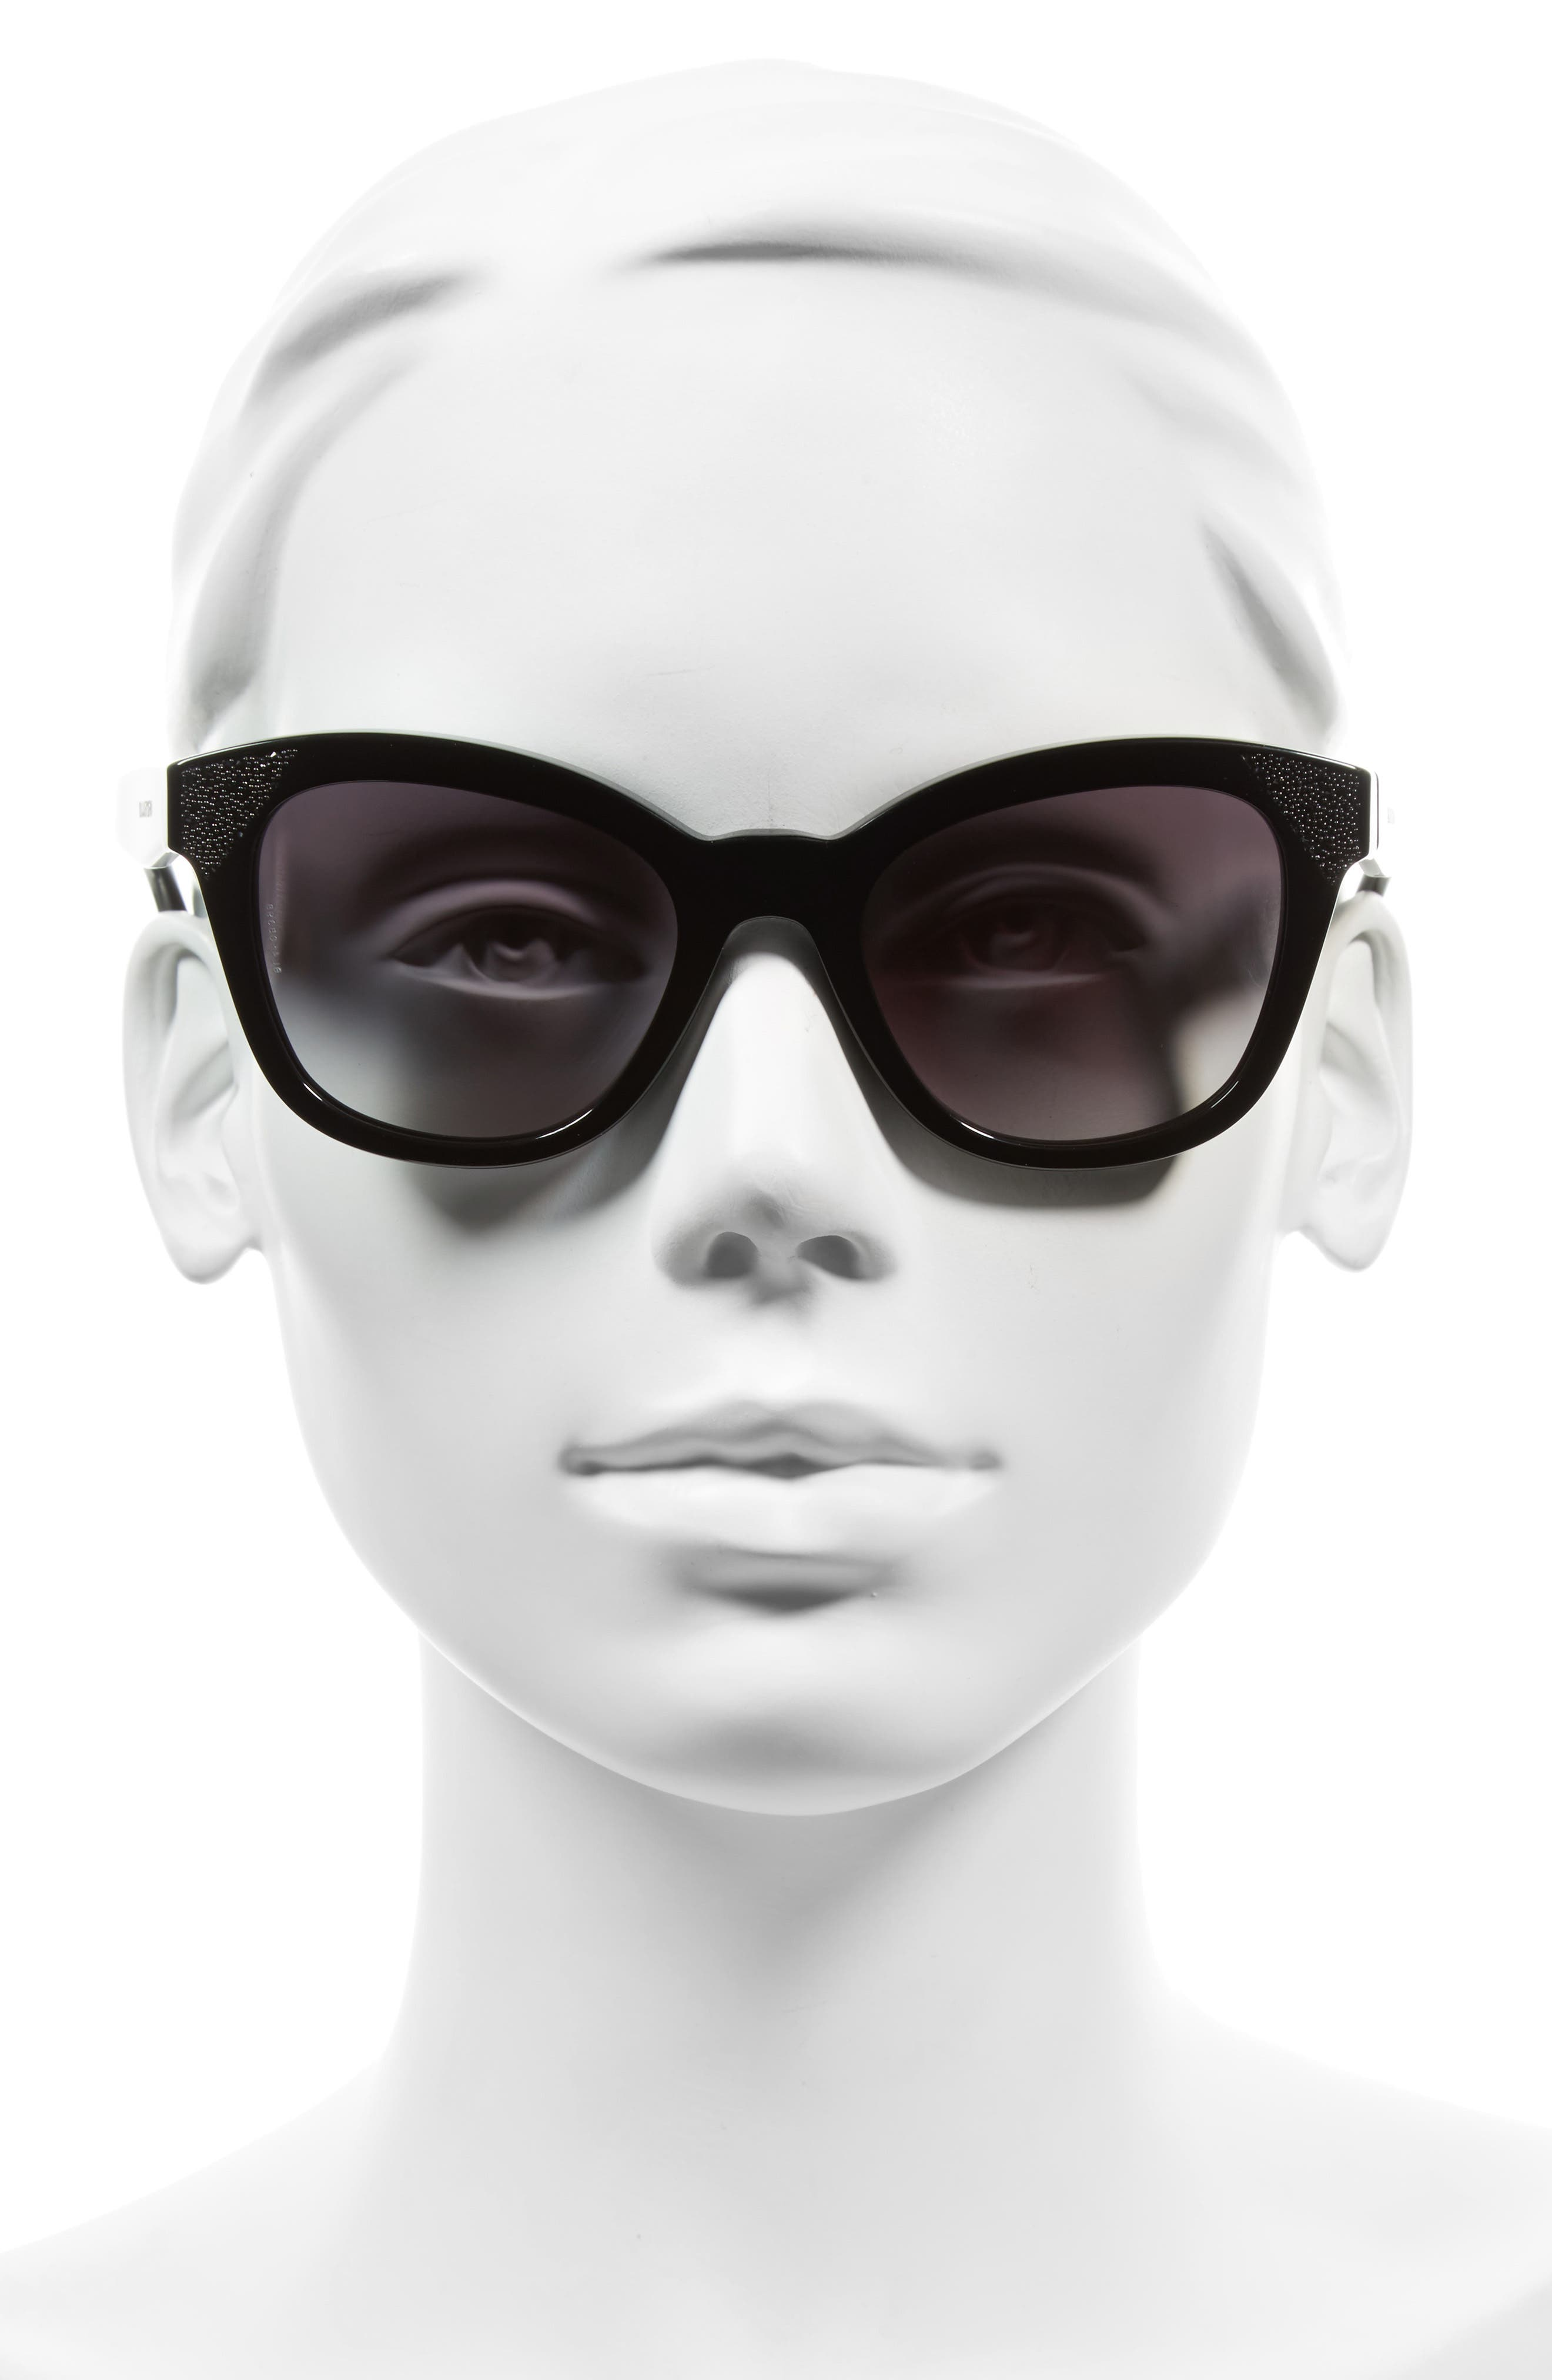 52mm Cat Eye Sunglasses,                             Alternate thumbnail 2, color,                             BLACK/ BLACK CRYSTAL